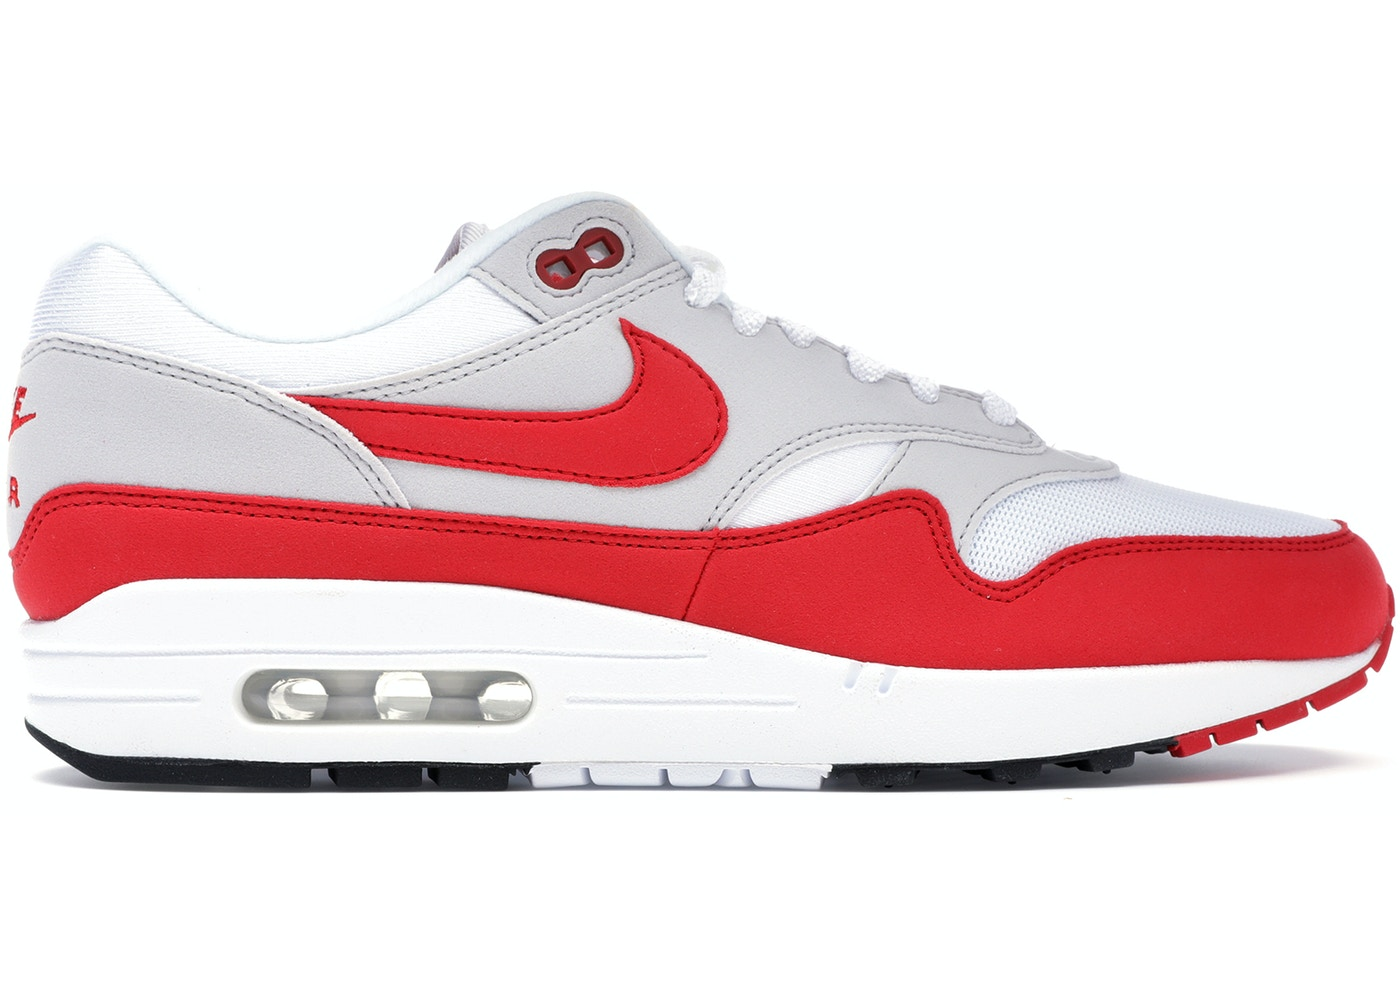 competitive price 91620 01a84 Air Max 1 Anniversary Red (2017/2018 Restock Pair)